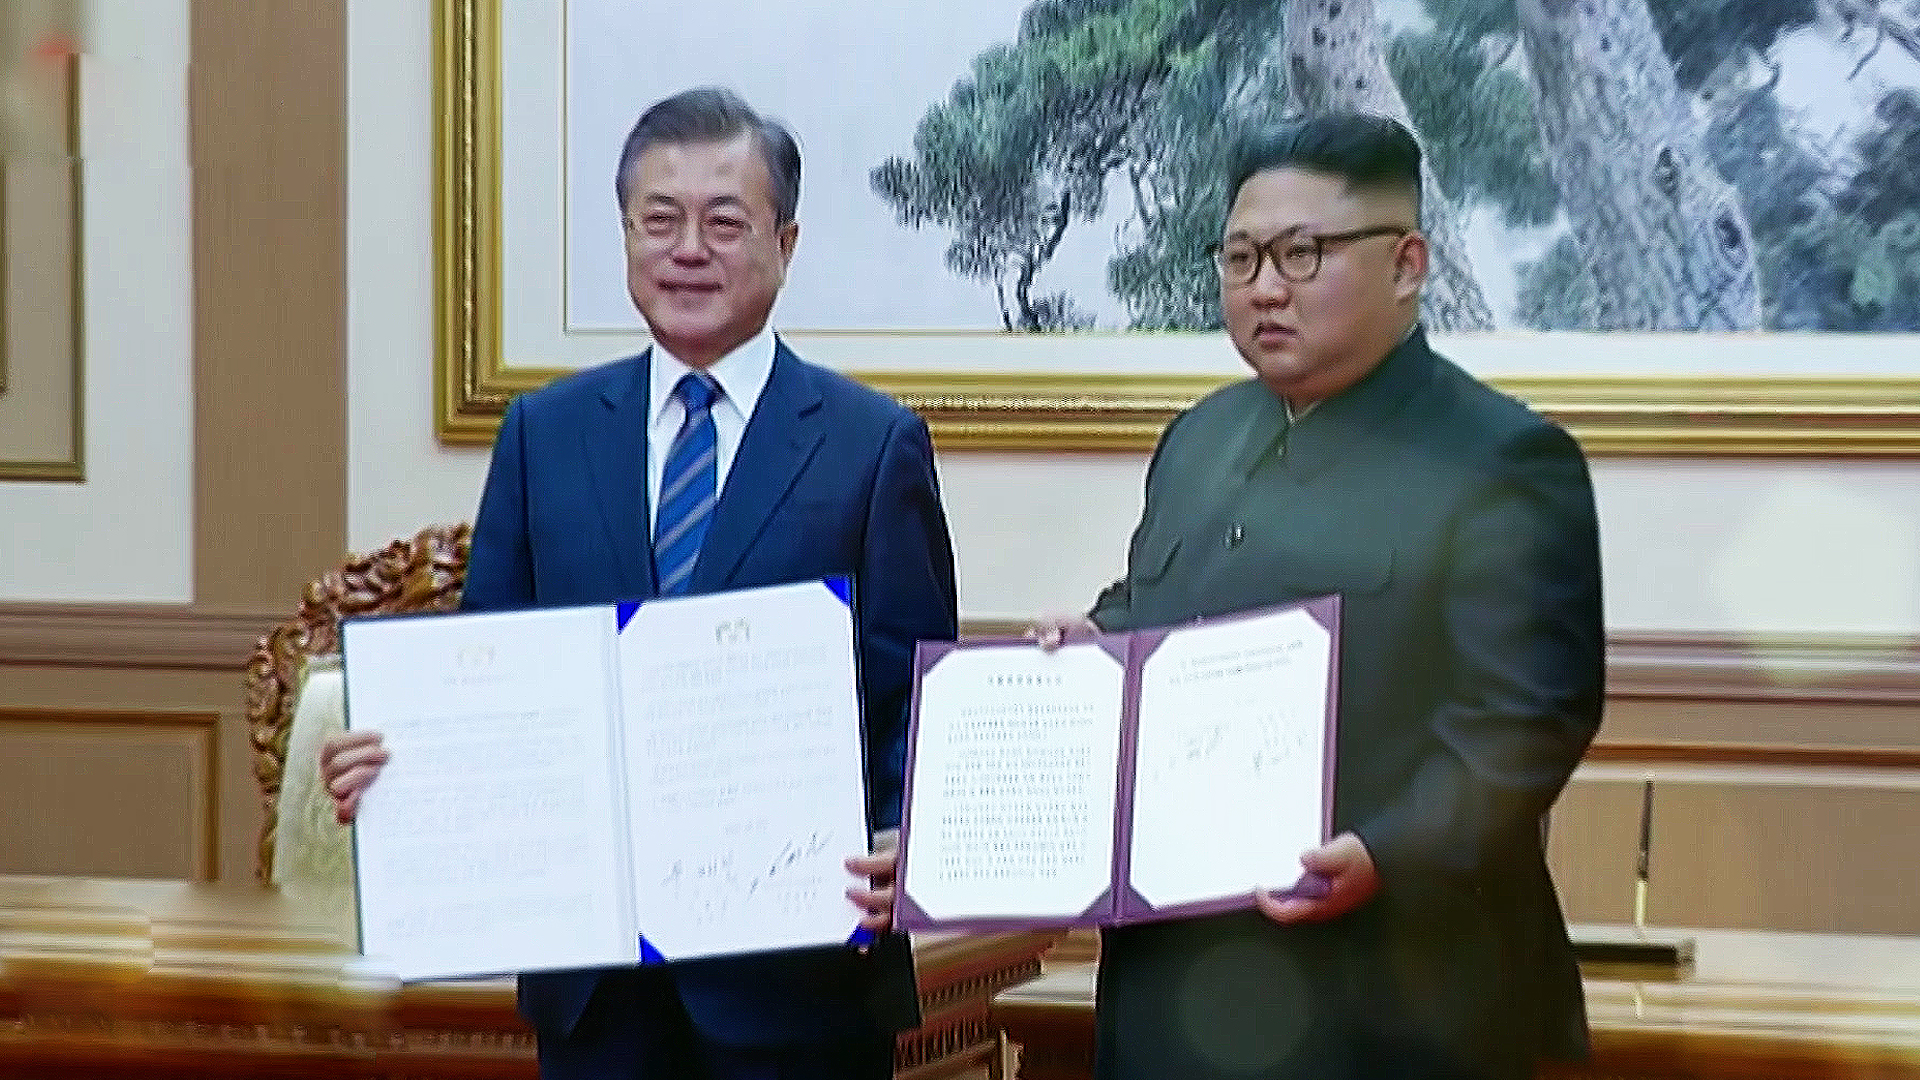 Ep.66 Can President Moon's UN General Assembly speech get the inter-Korean peace process back on track?